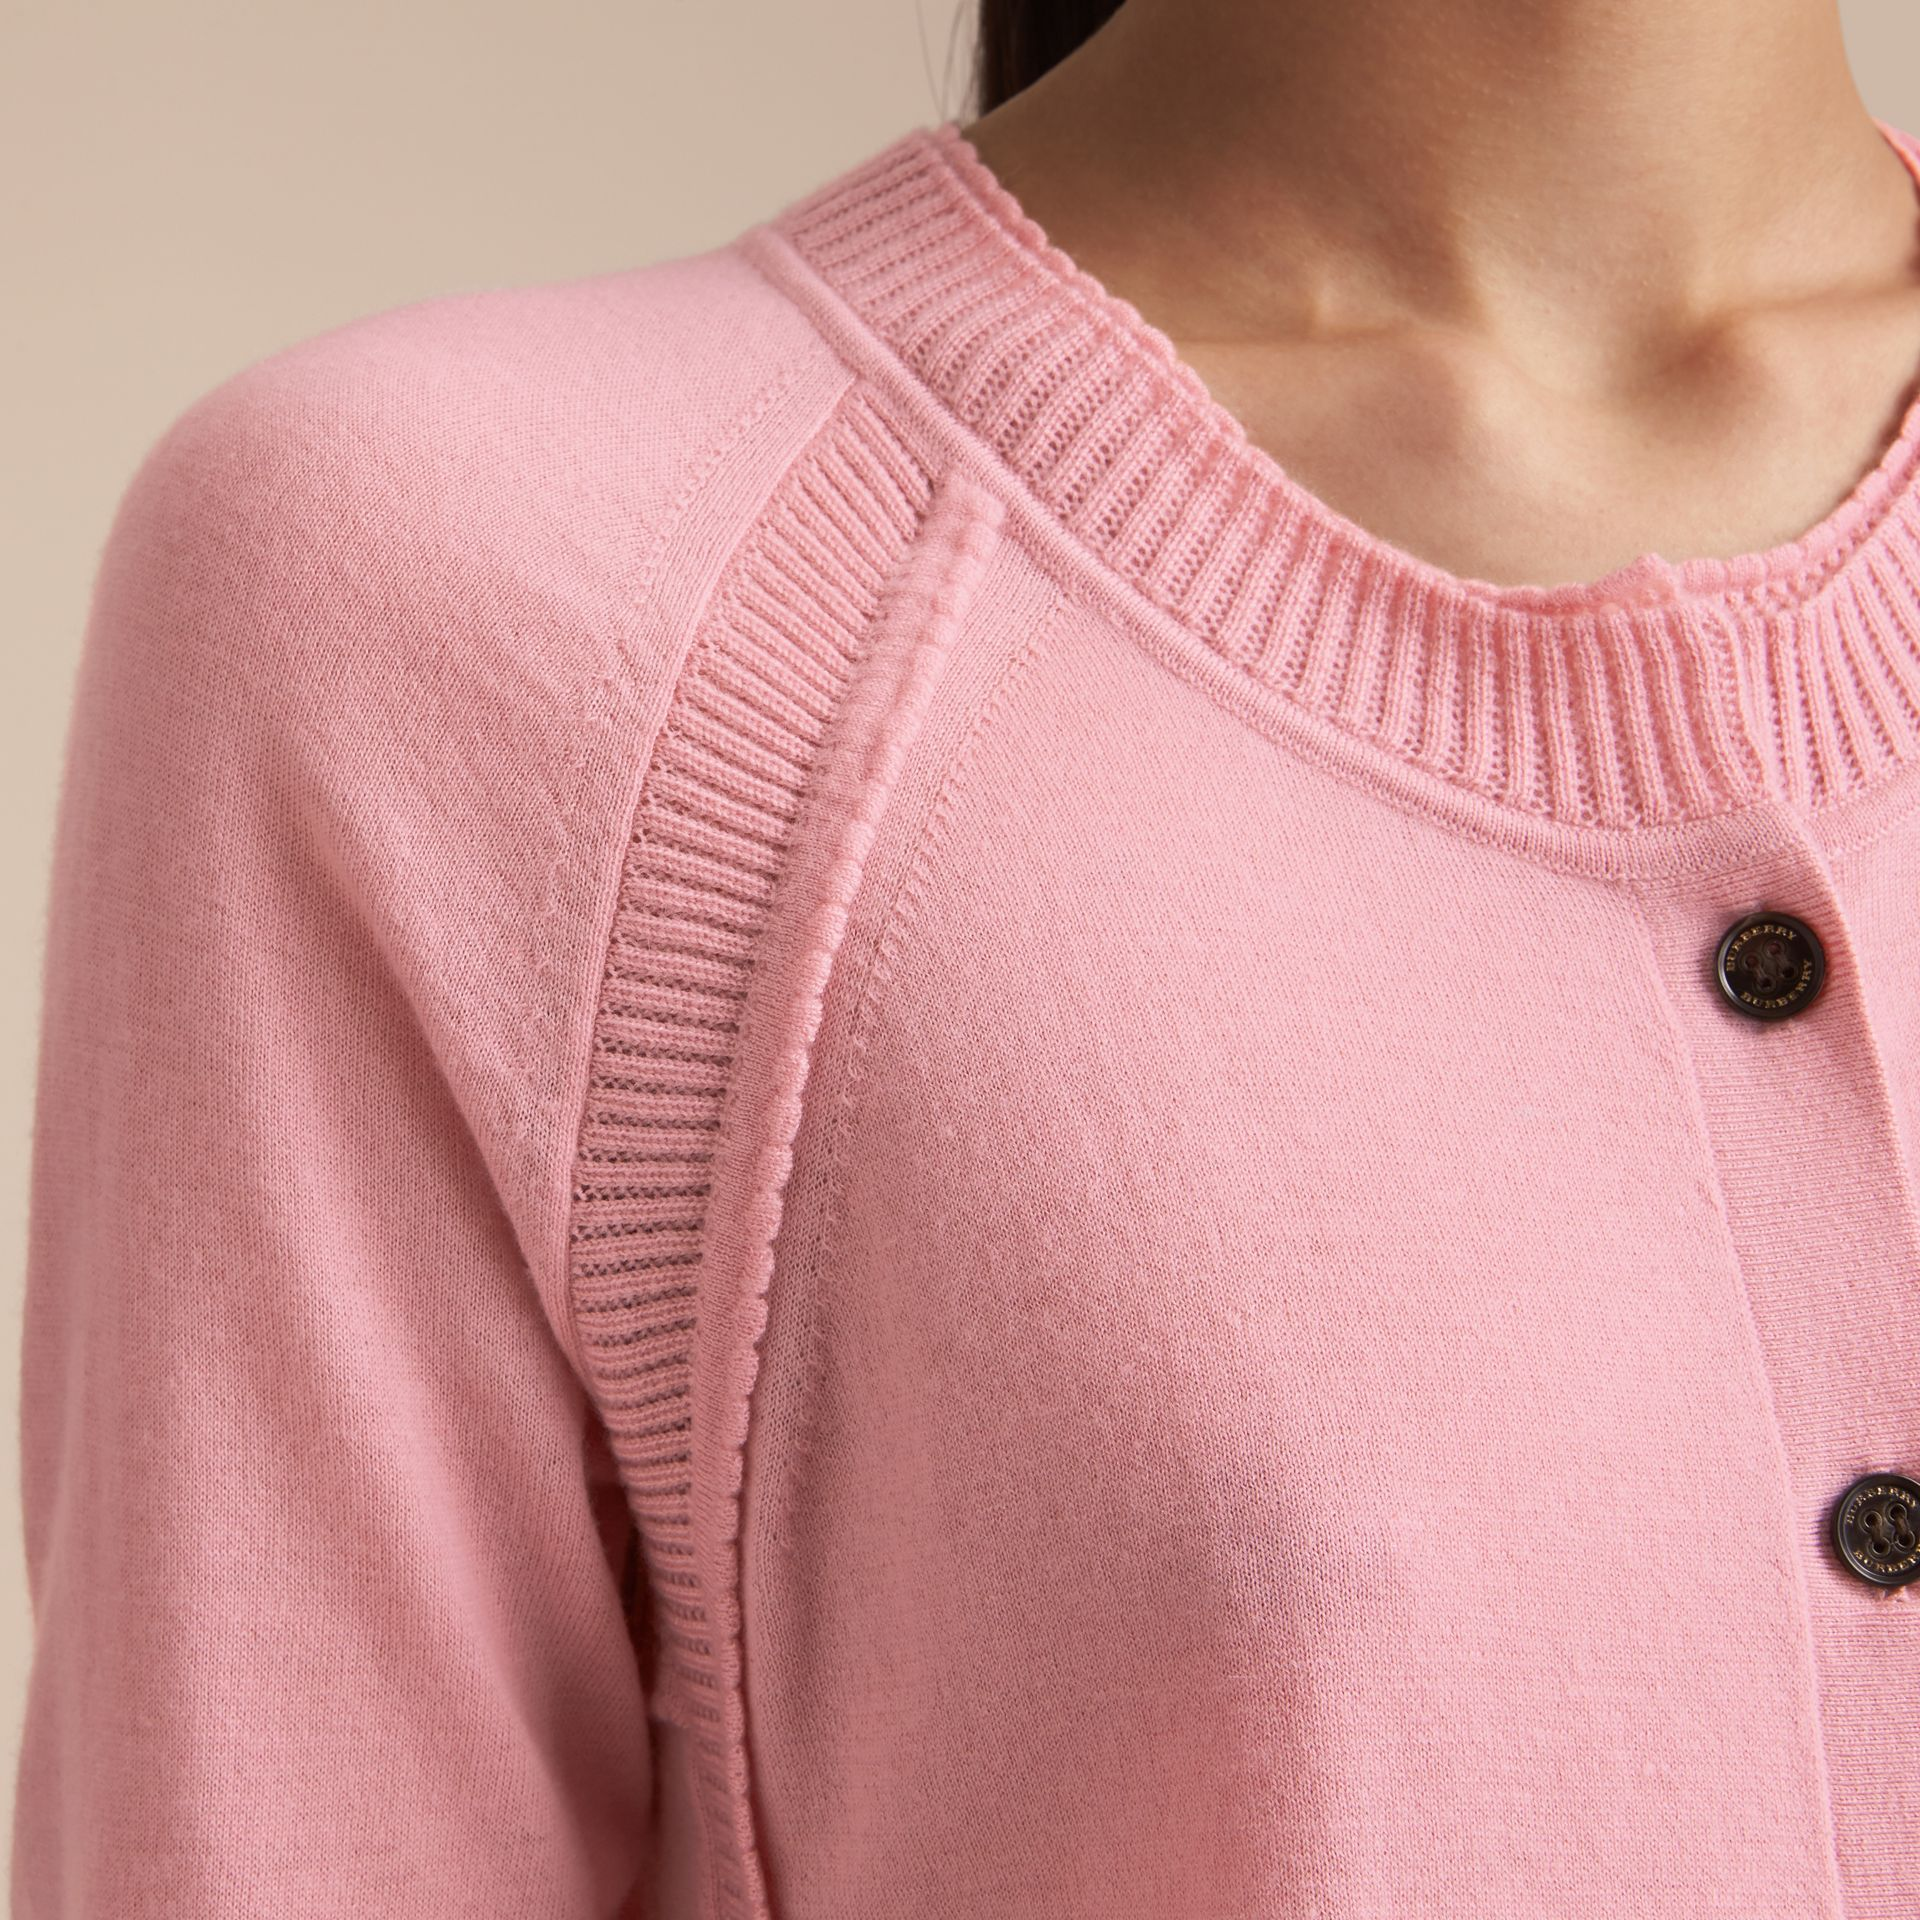 Open-knit Detail Cashmere Cardigan in Apricot Pink - Women | Burberry - gallery image 5